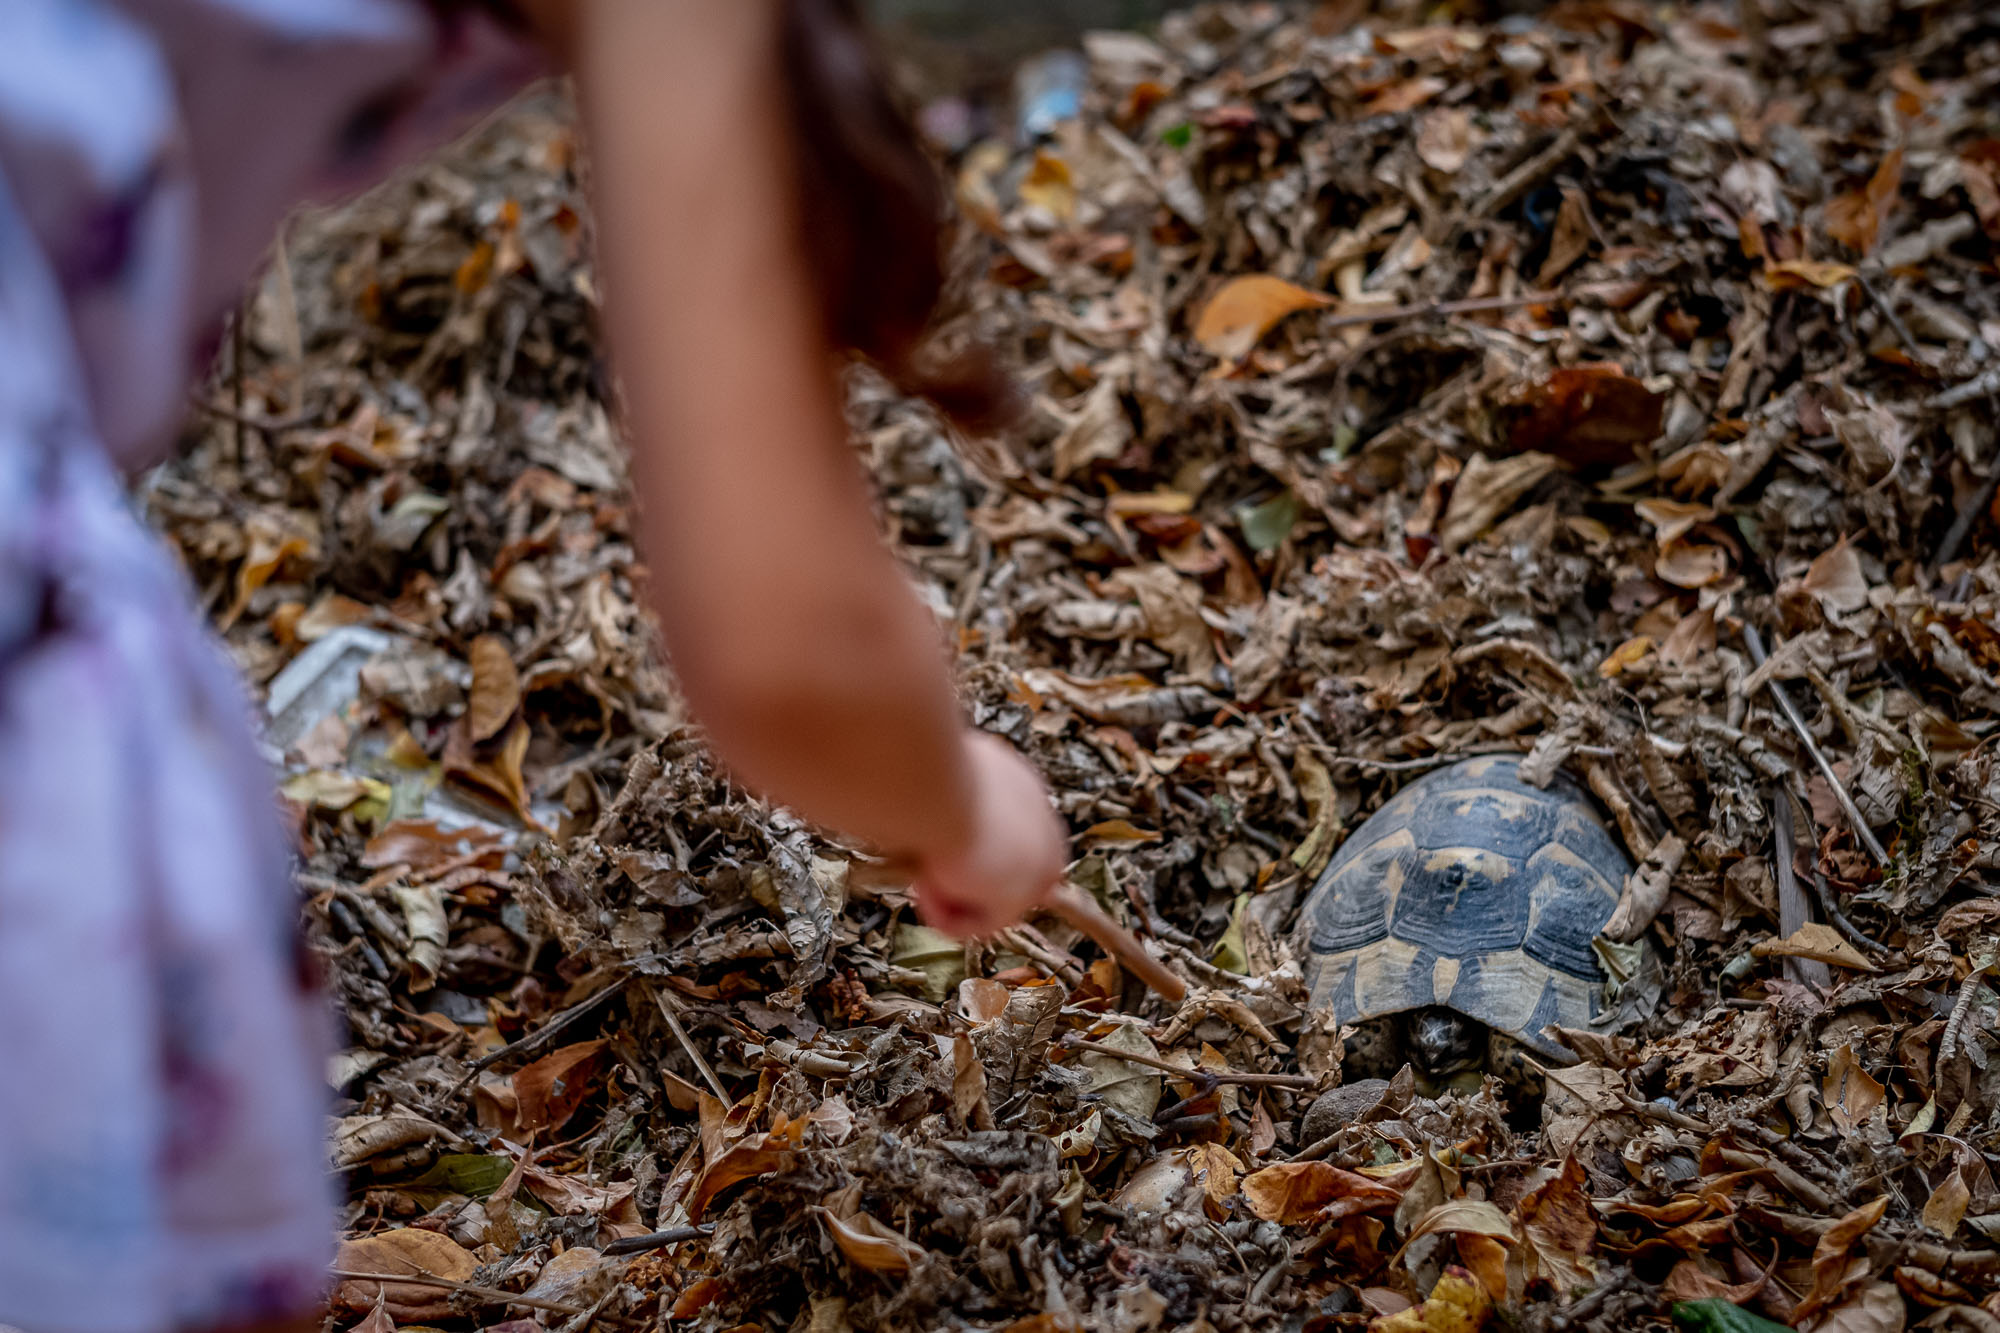 Removing leaves off a turtle hidden in a pile of leaves